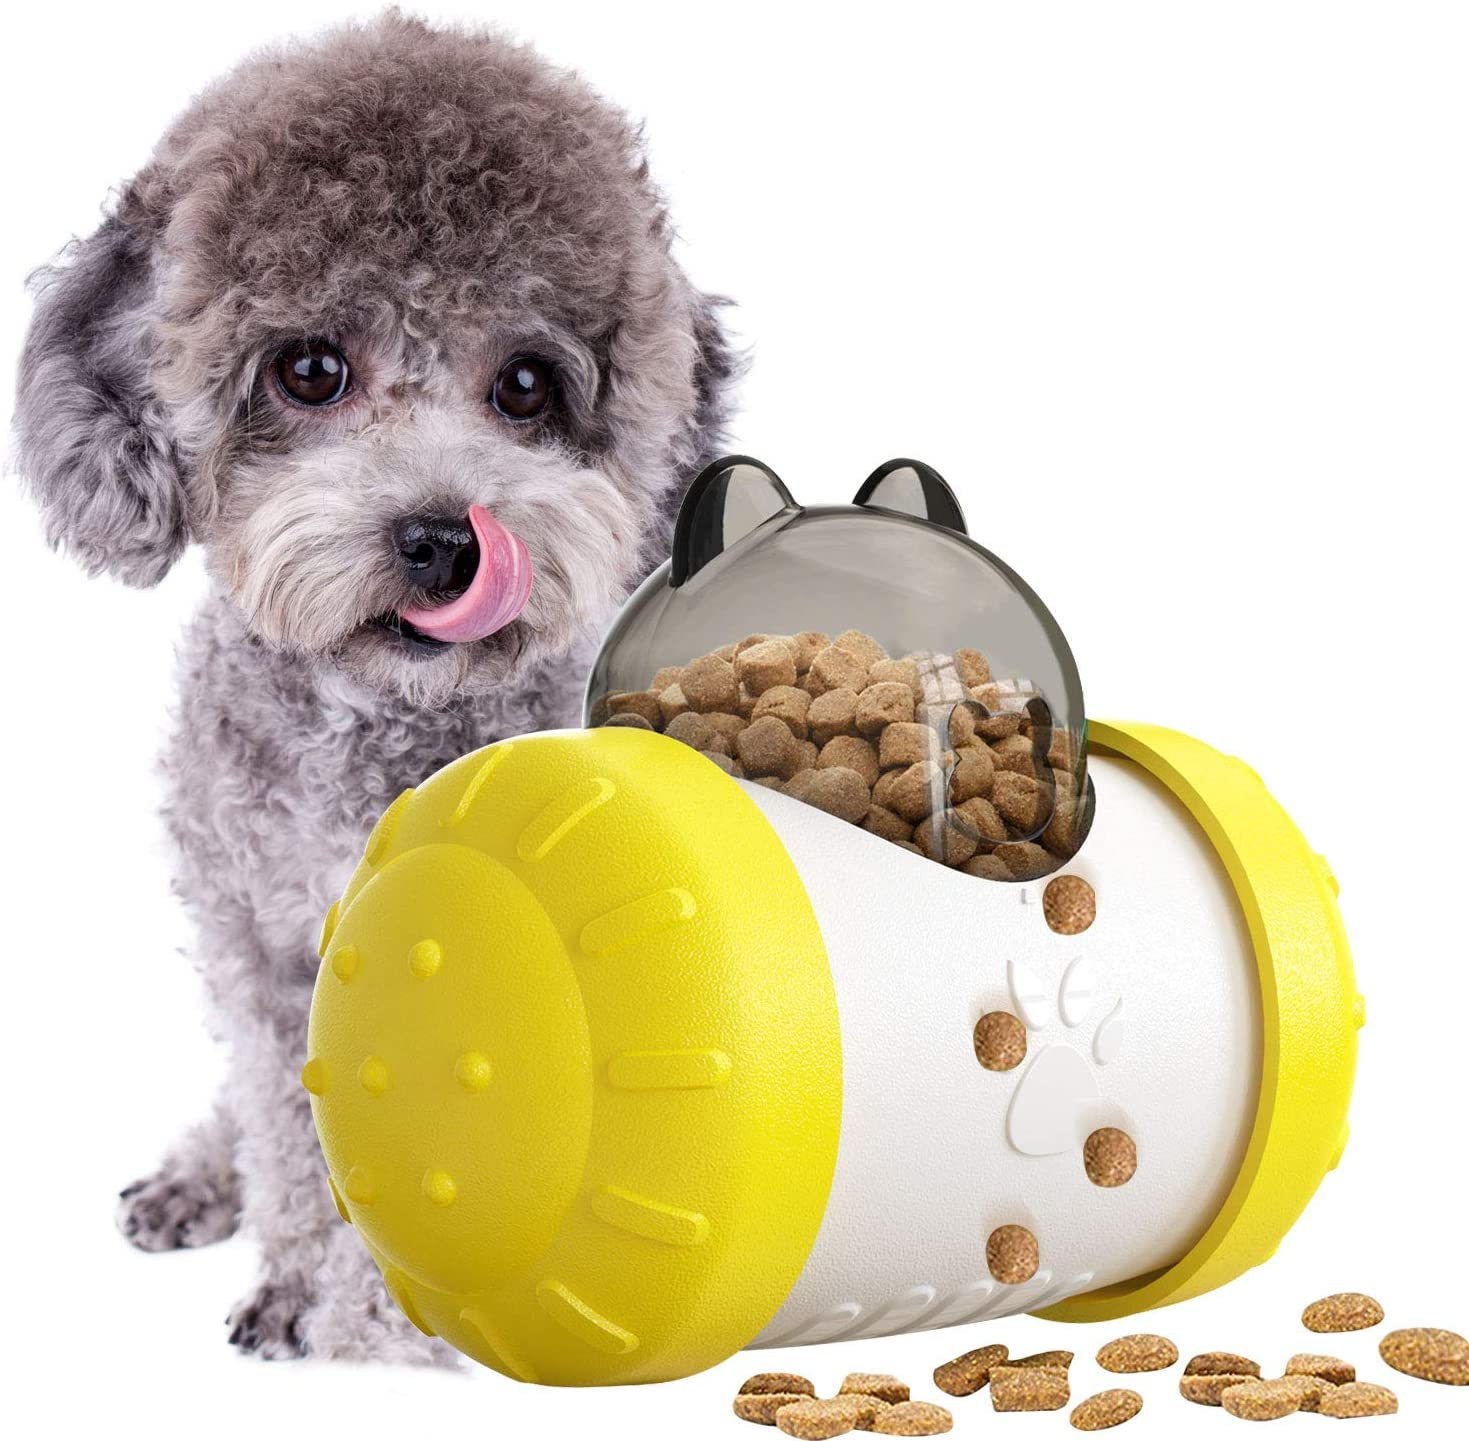 YESURPRISE Interactive IQ Treat Ball Dog Toy, Dogs Food Dispensing Puzzle Toys, Fun Slow Feeder Increases IQ and Mental Stimulation, Tumbler Treat Toys for Puppy, Small Medium Cats, Dogs, Pets(Yellow)